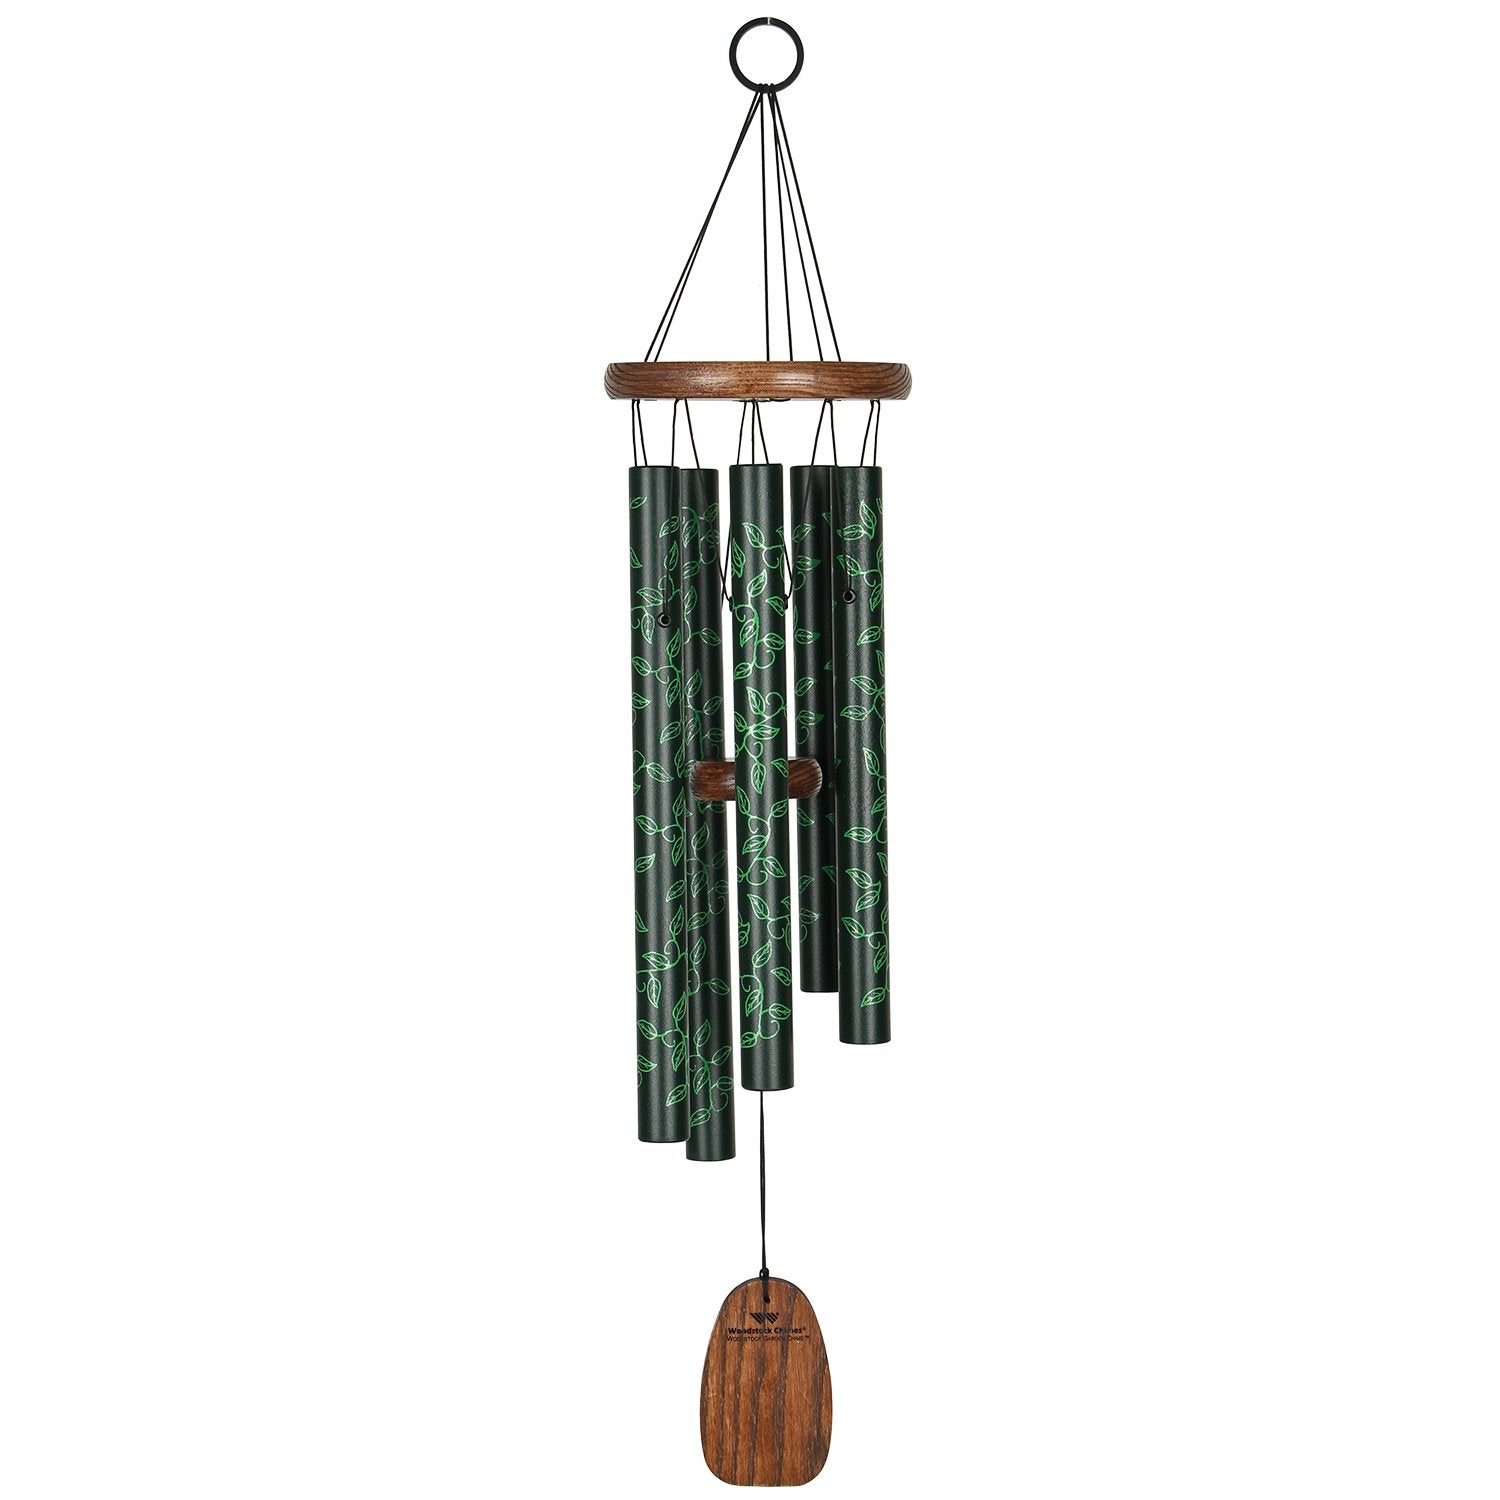 Garden Chime - Ivy full product image